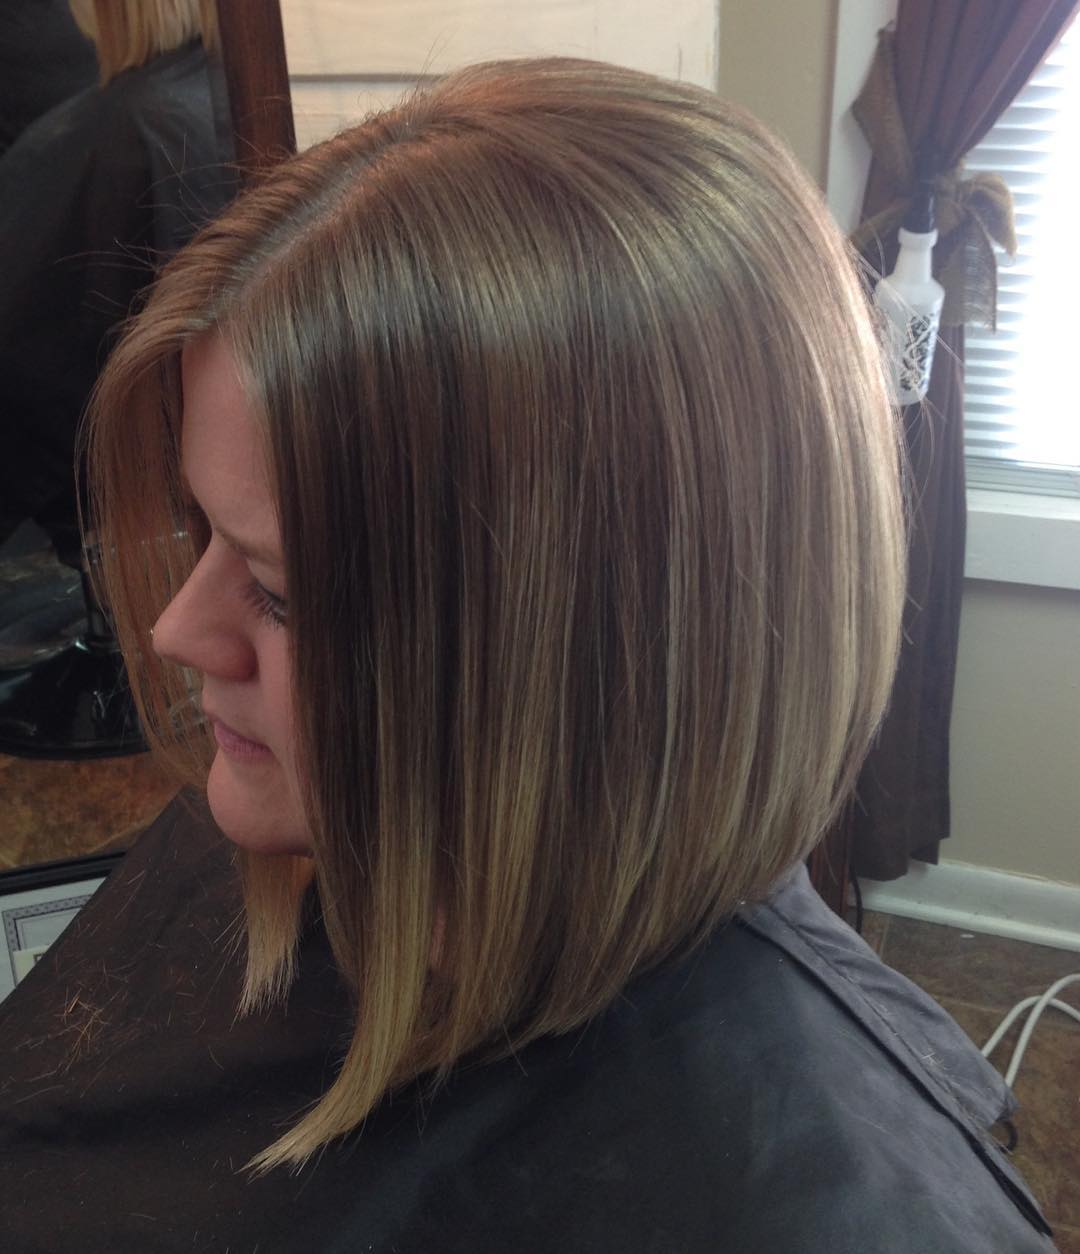 Long Bob Haircuts With Bangs 26 Swing Bob Haircut Ideas Designs Hairstyles Design